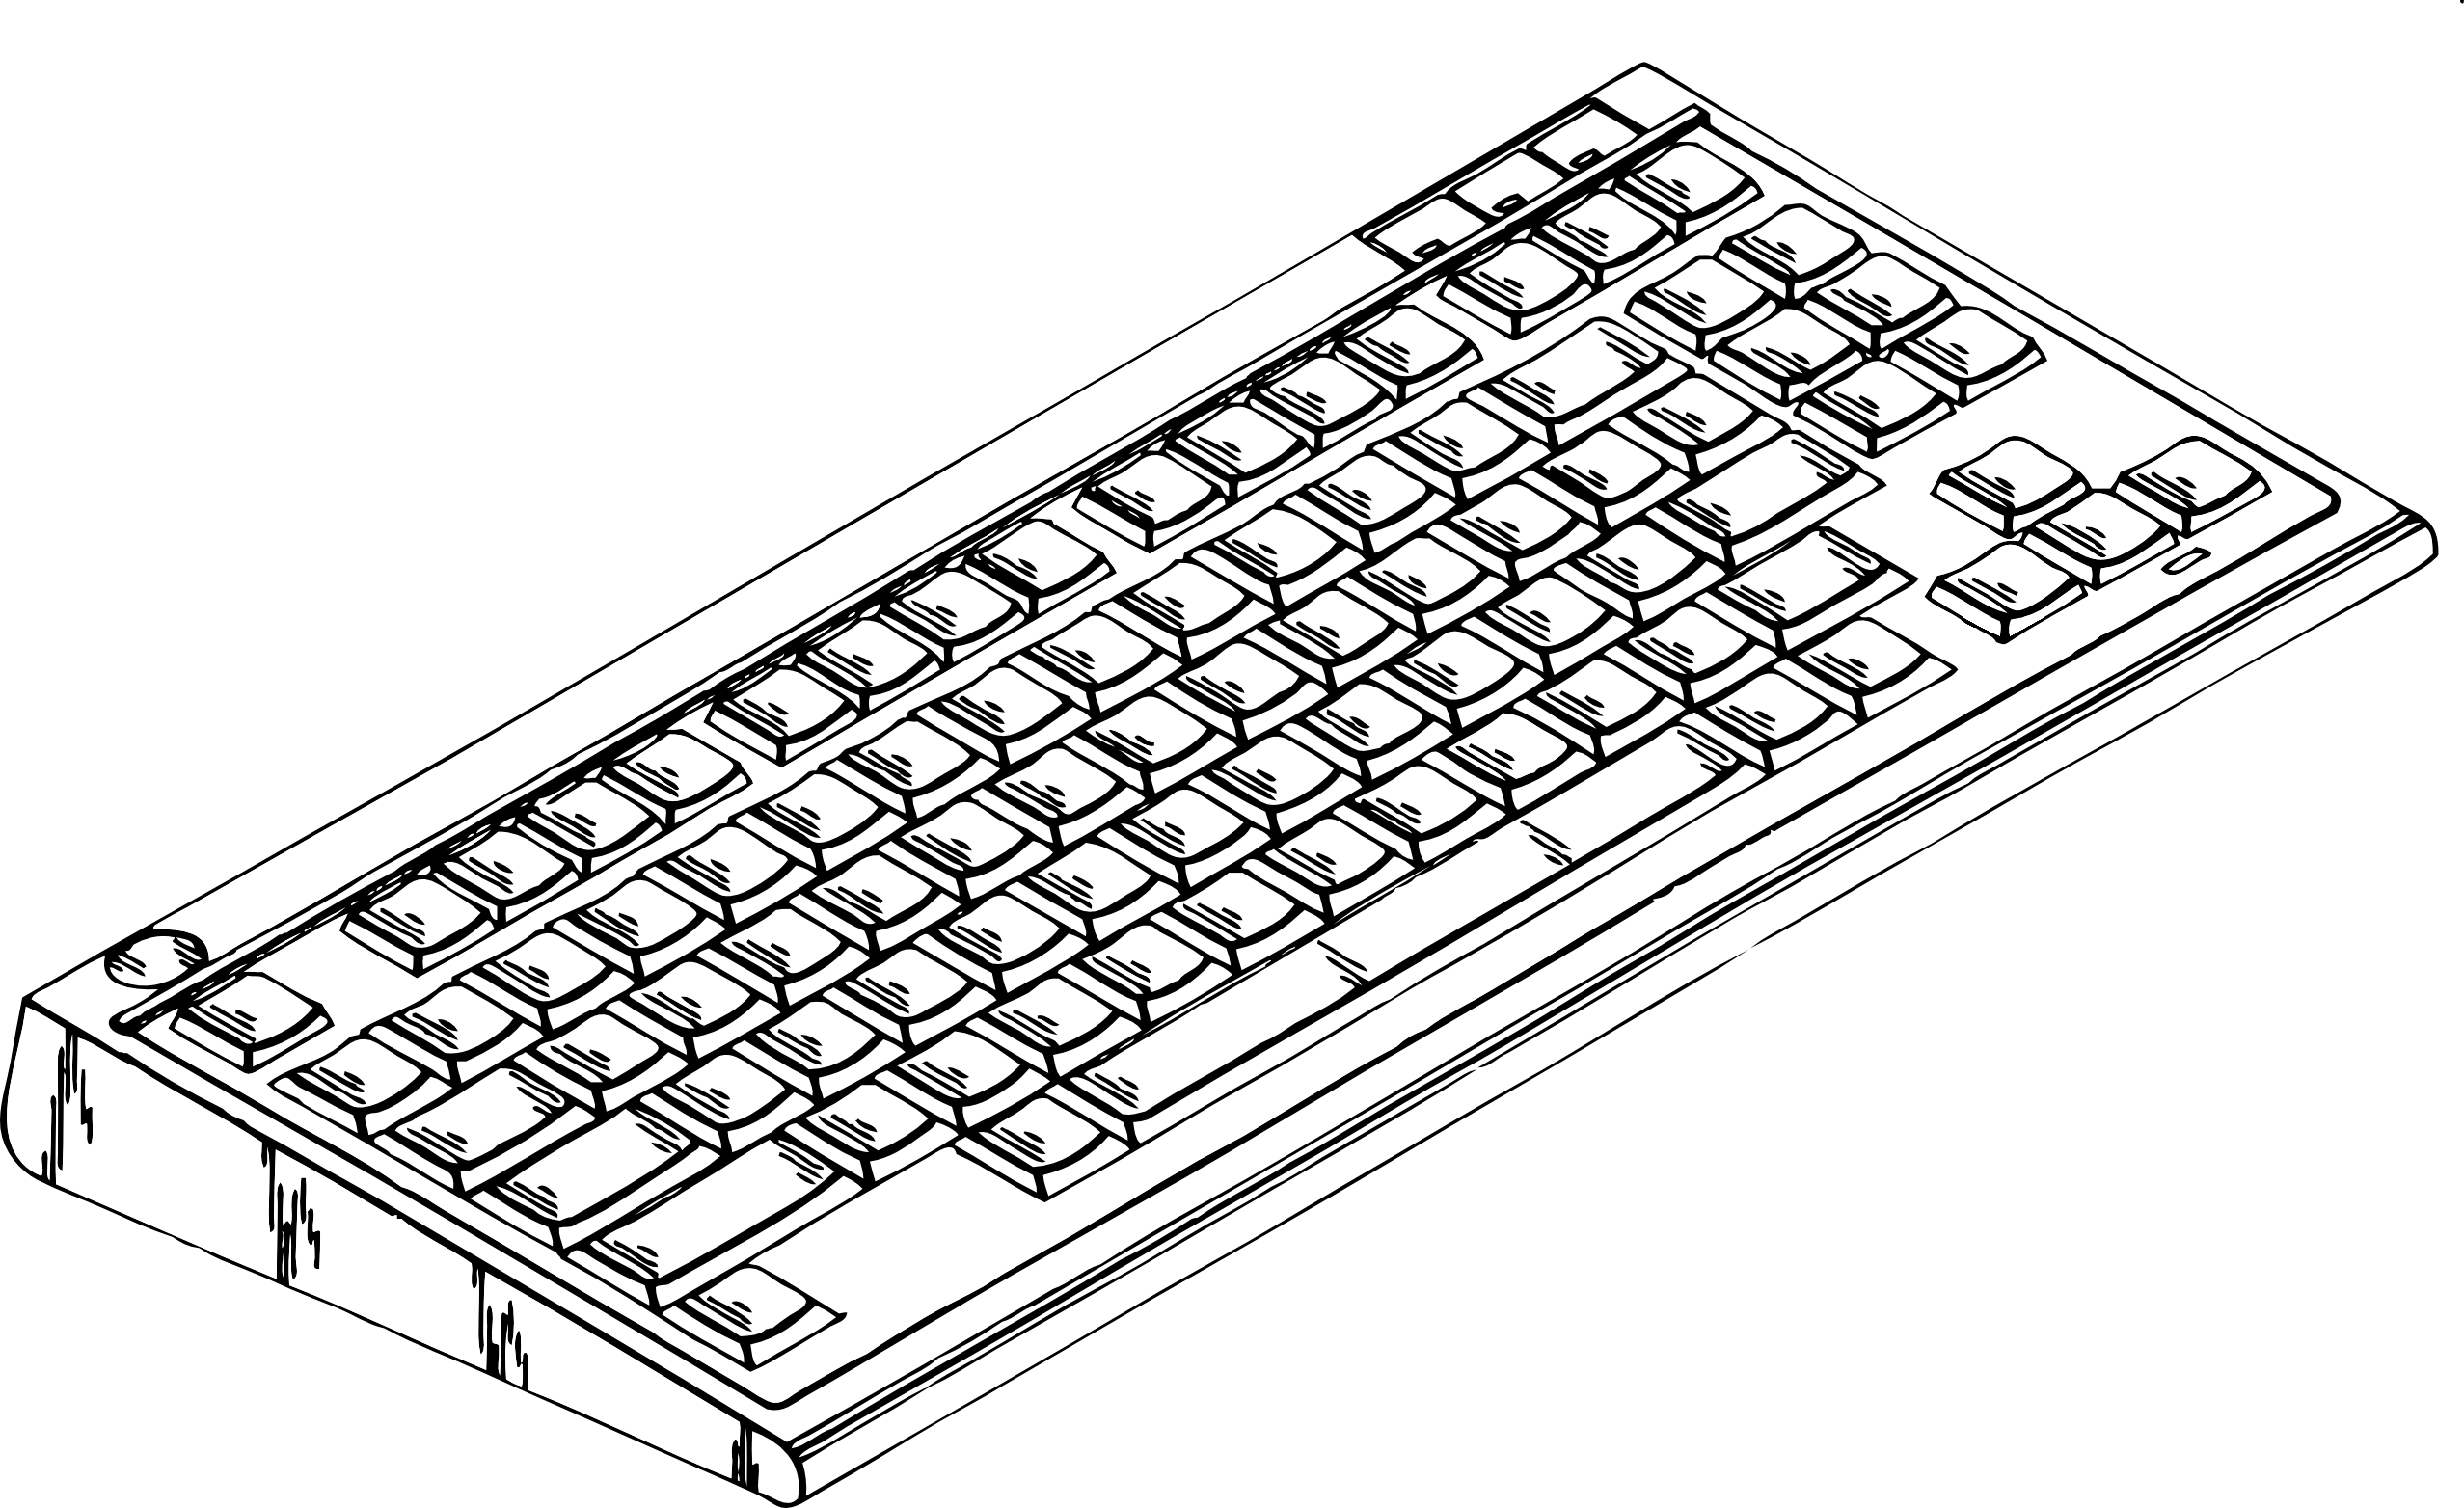 Computer explore pictures. Keyboard clipart royalty free